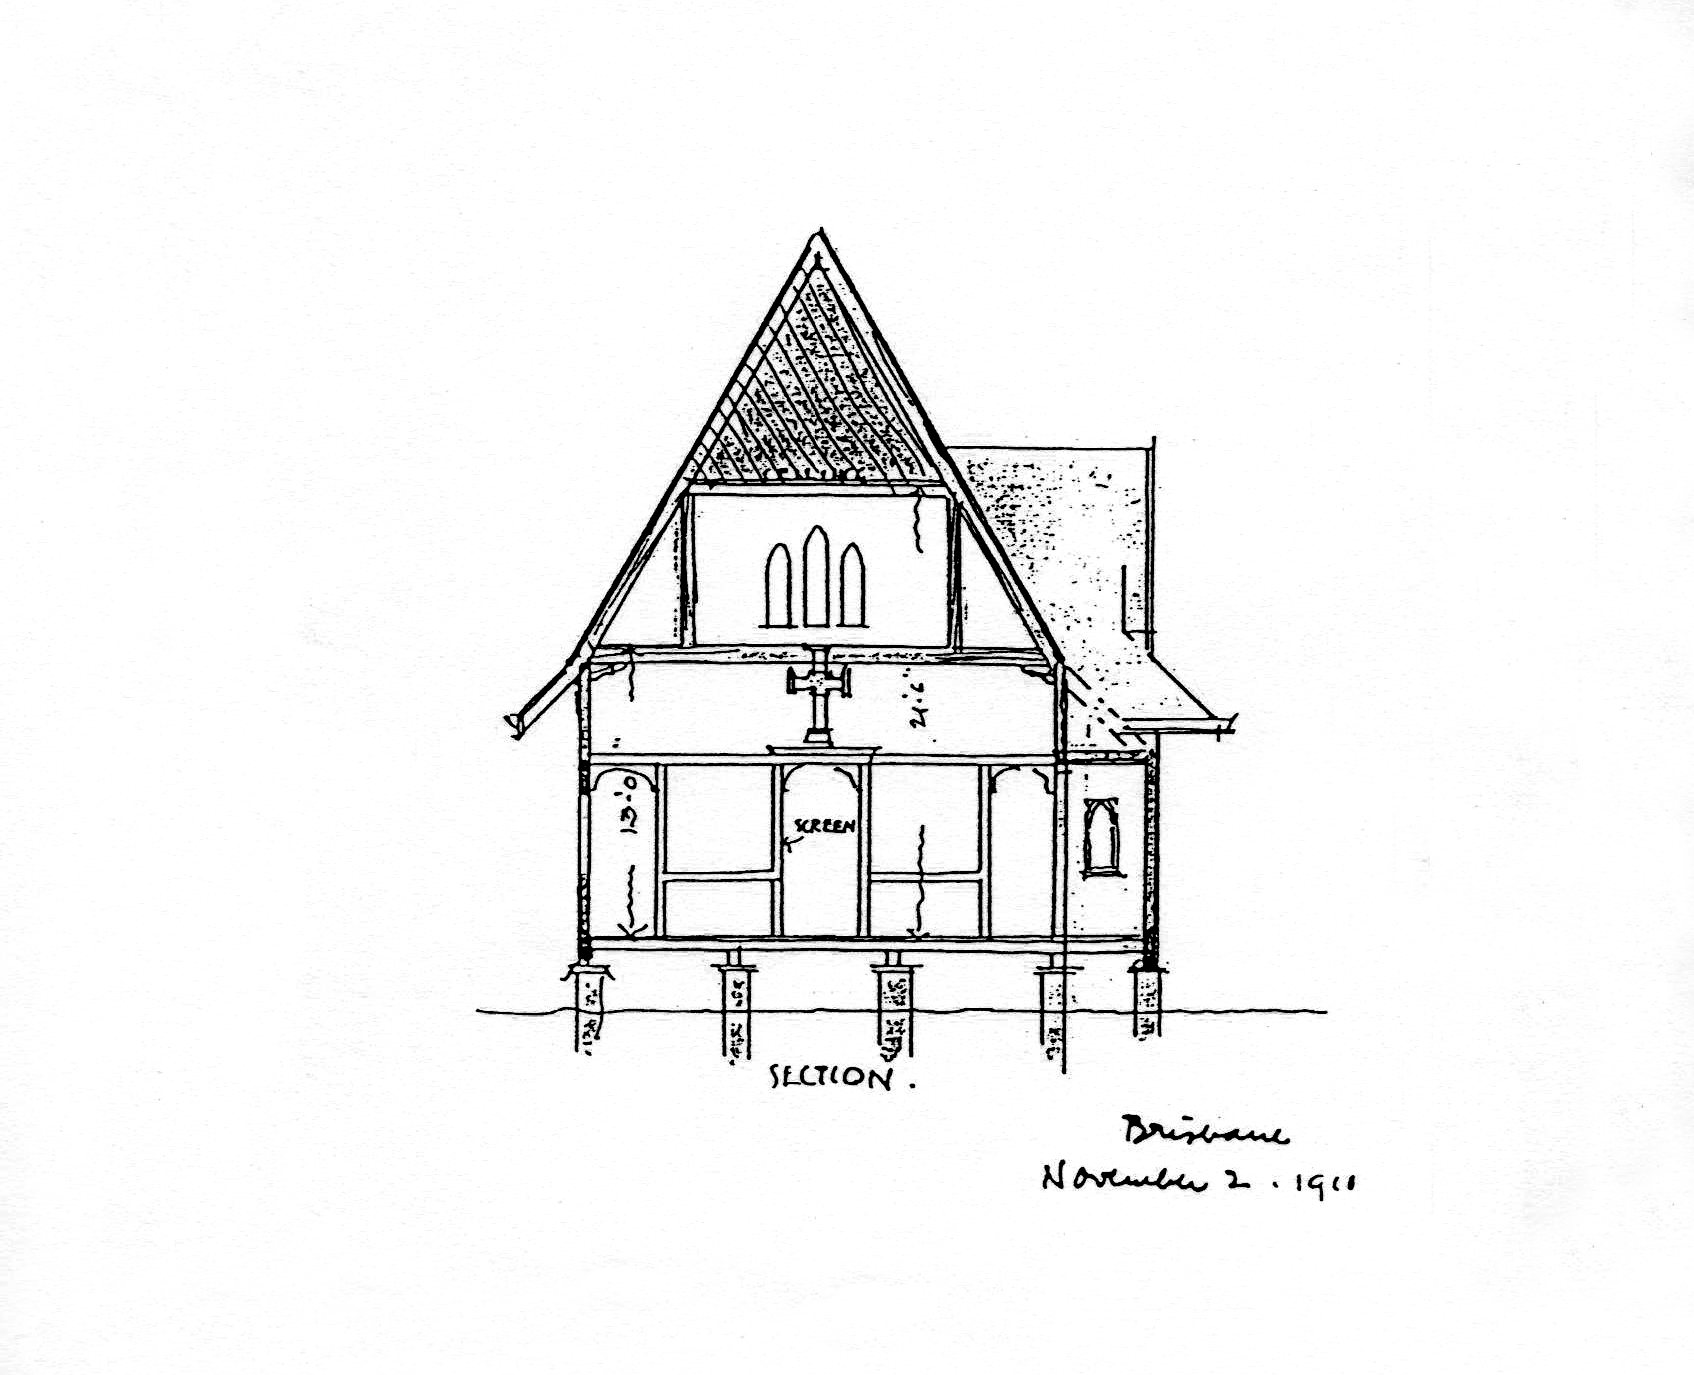 Robin Dods' Architectural Drawing Of